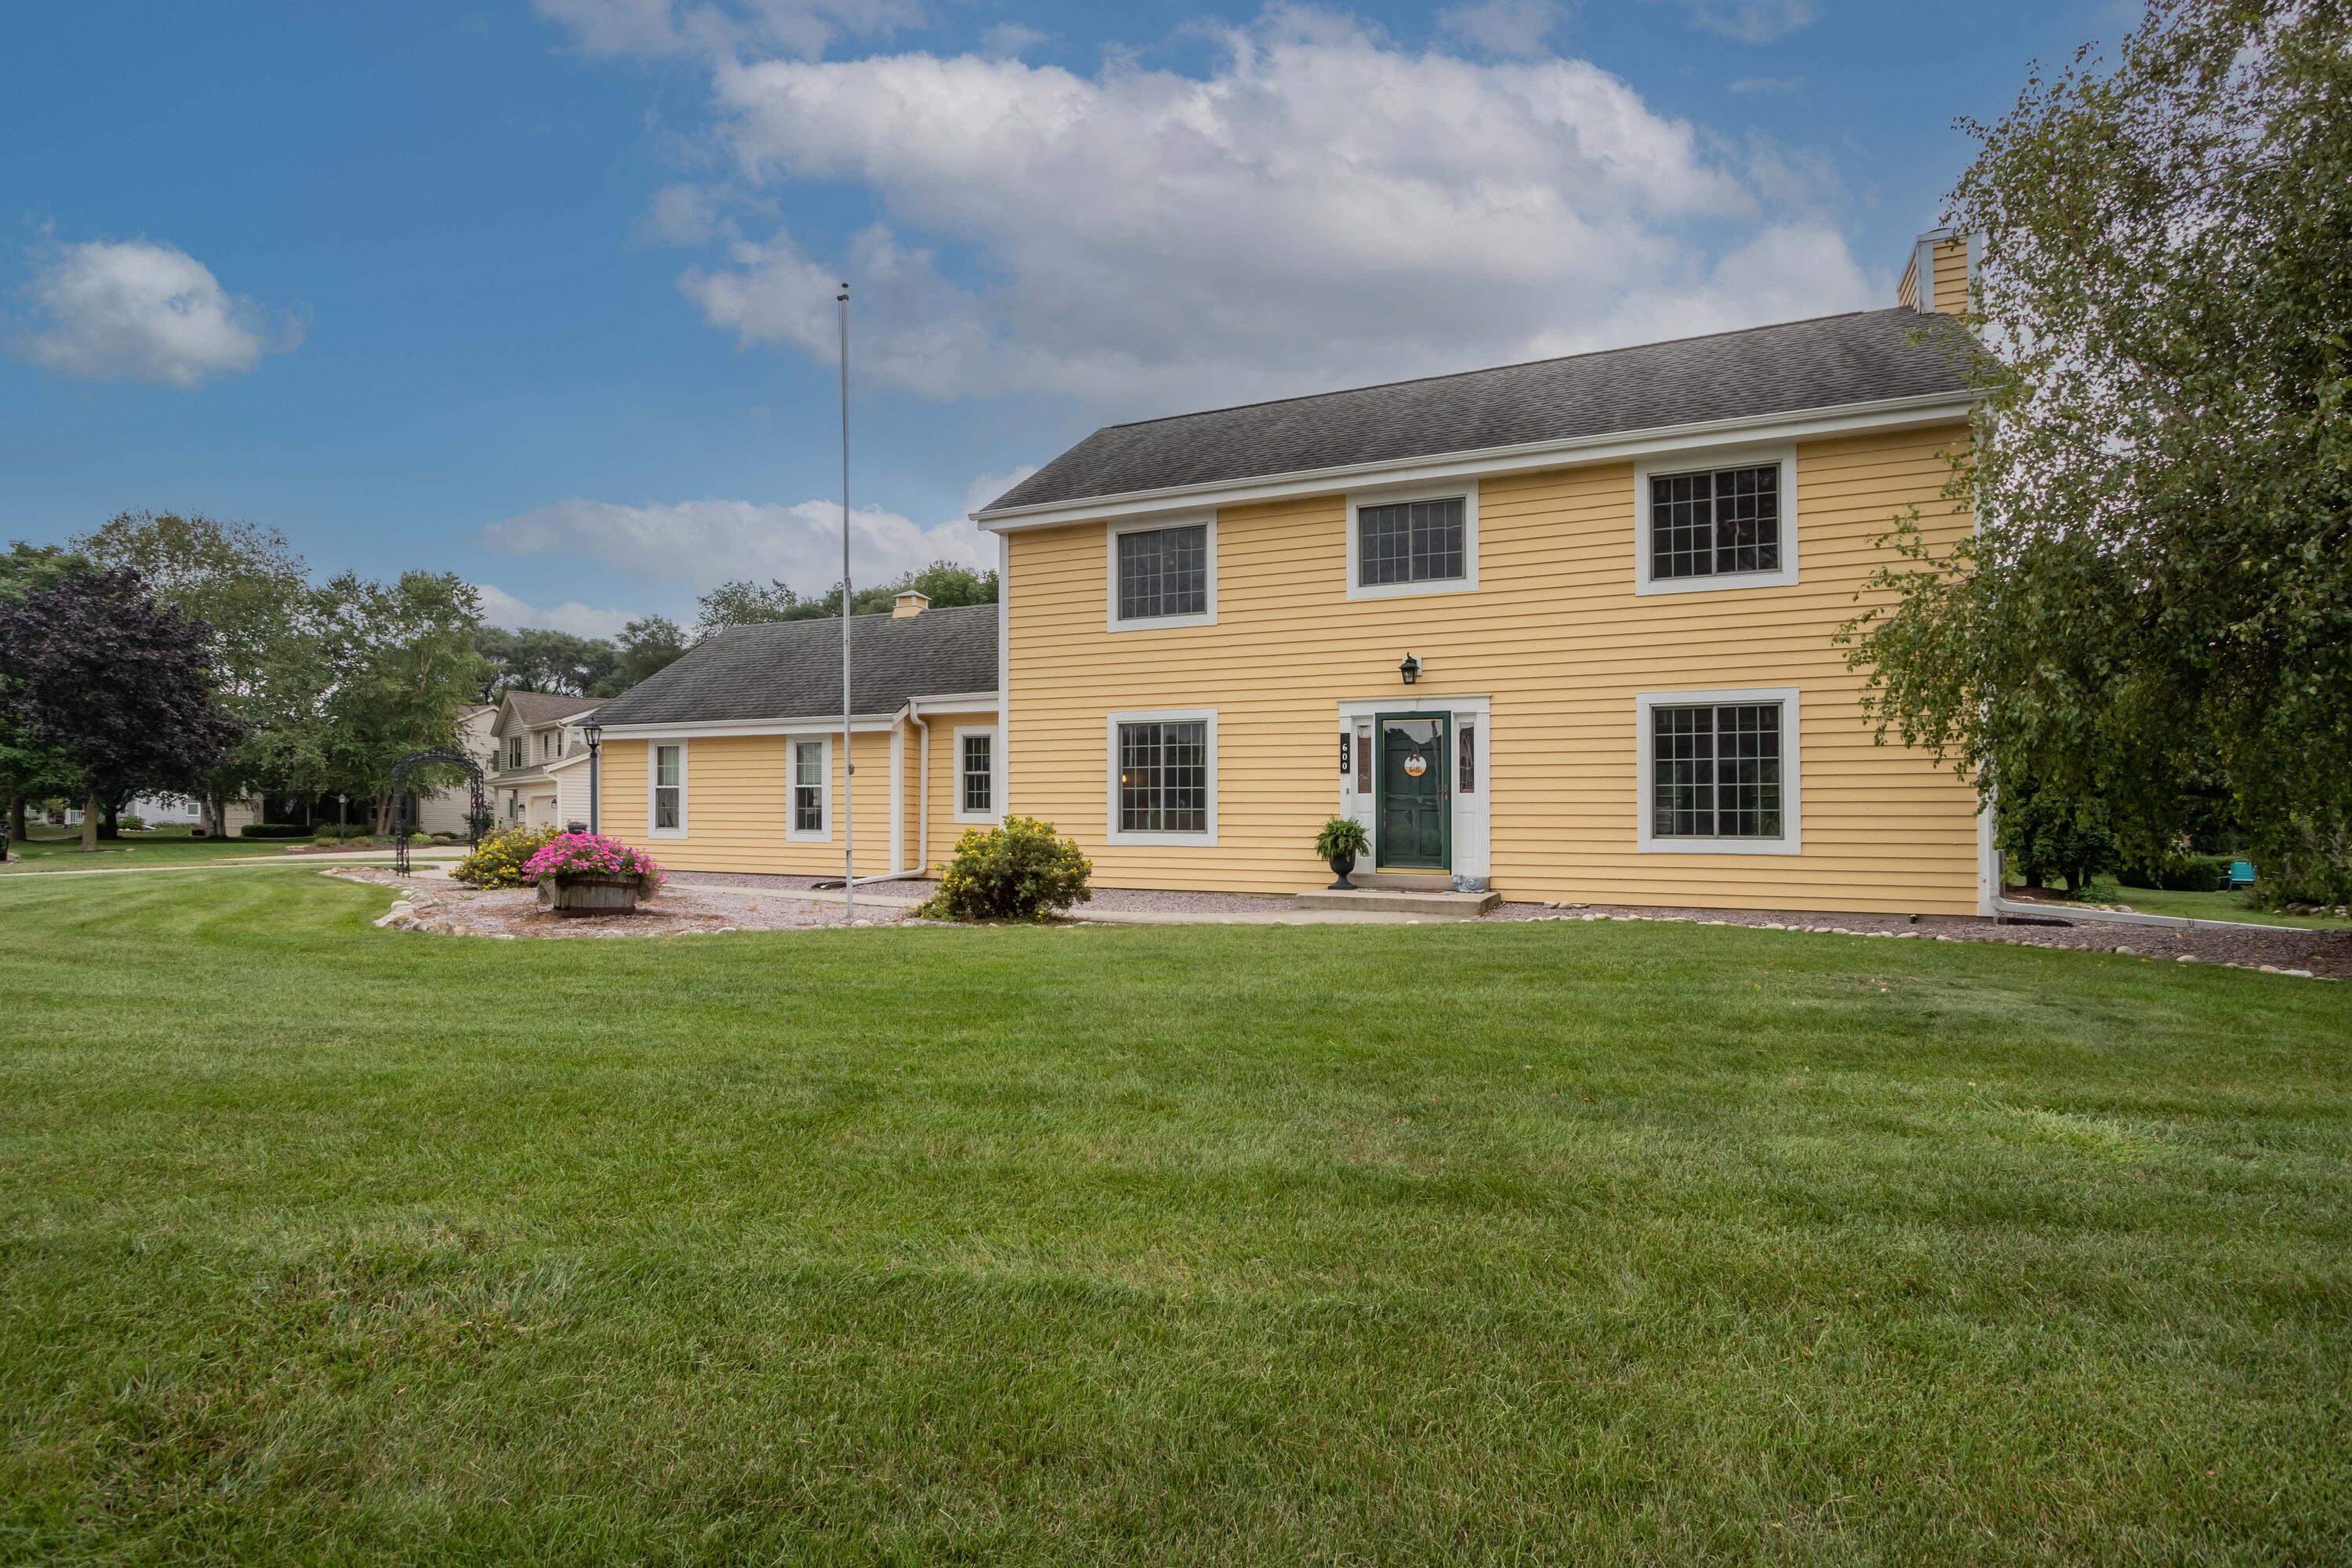 600 Rae Dr, Hartland, Wisconsin 53029, 4 Bedrooms Bedrooms, 9 Rooms Rooms,2 BathroomsBathrooms,Single-Family,For Sale,Rae Dr,1760161